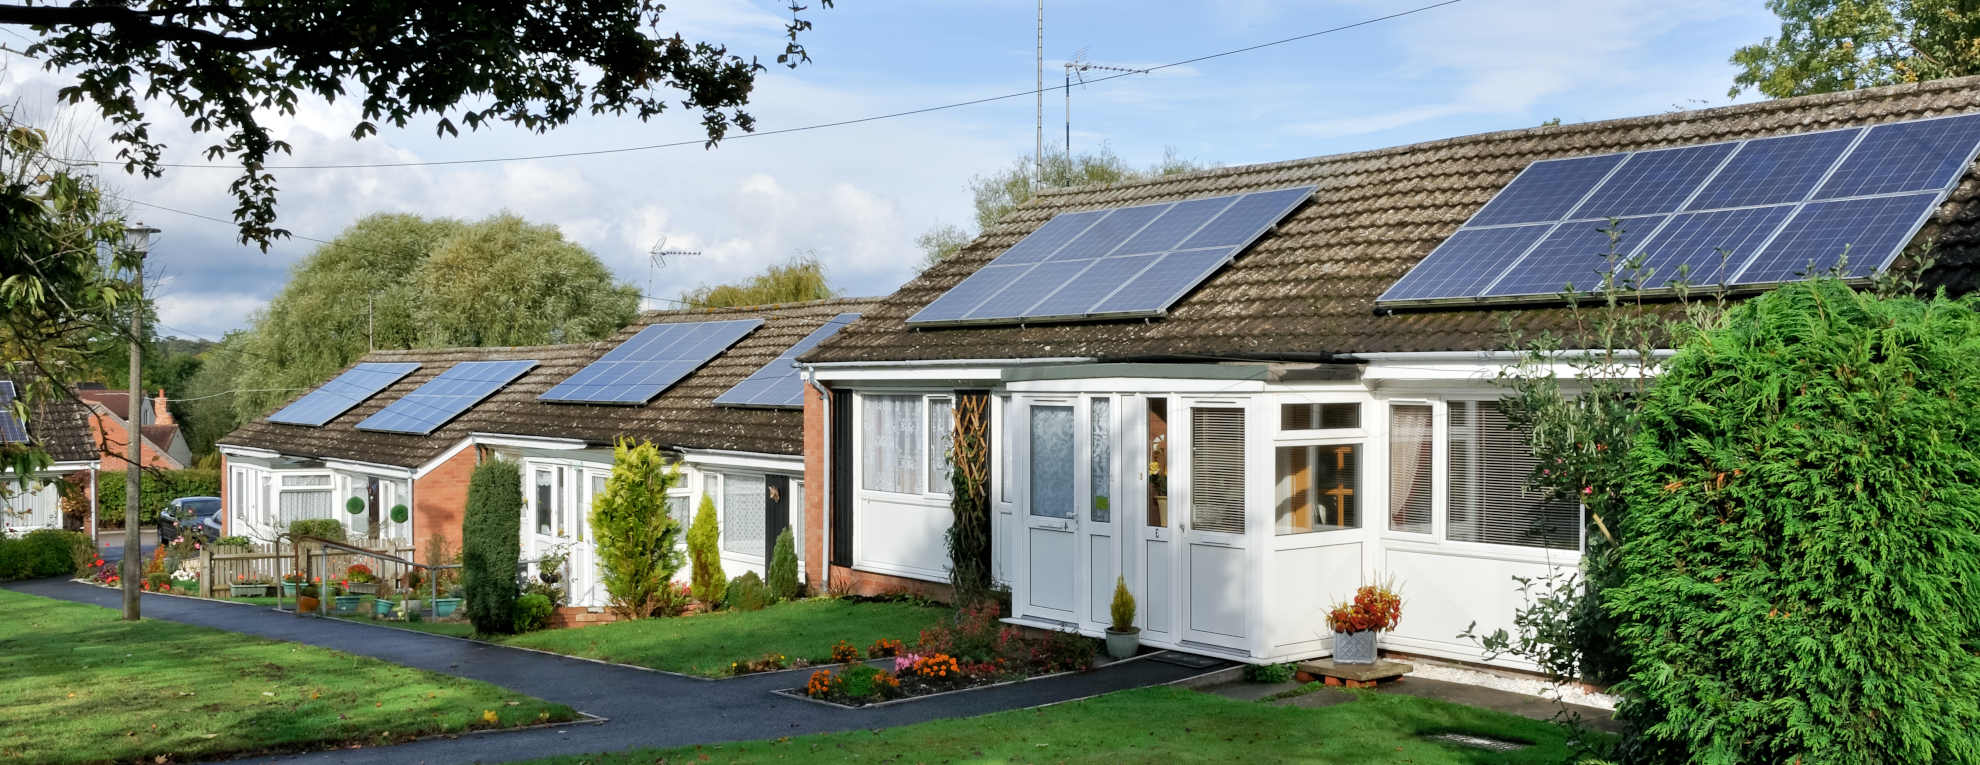 Why You Should Install Solar Panels On Your Home in 2021